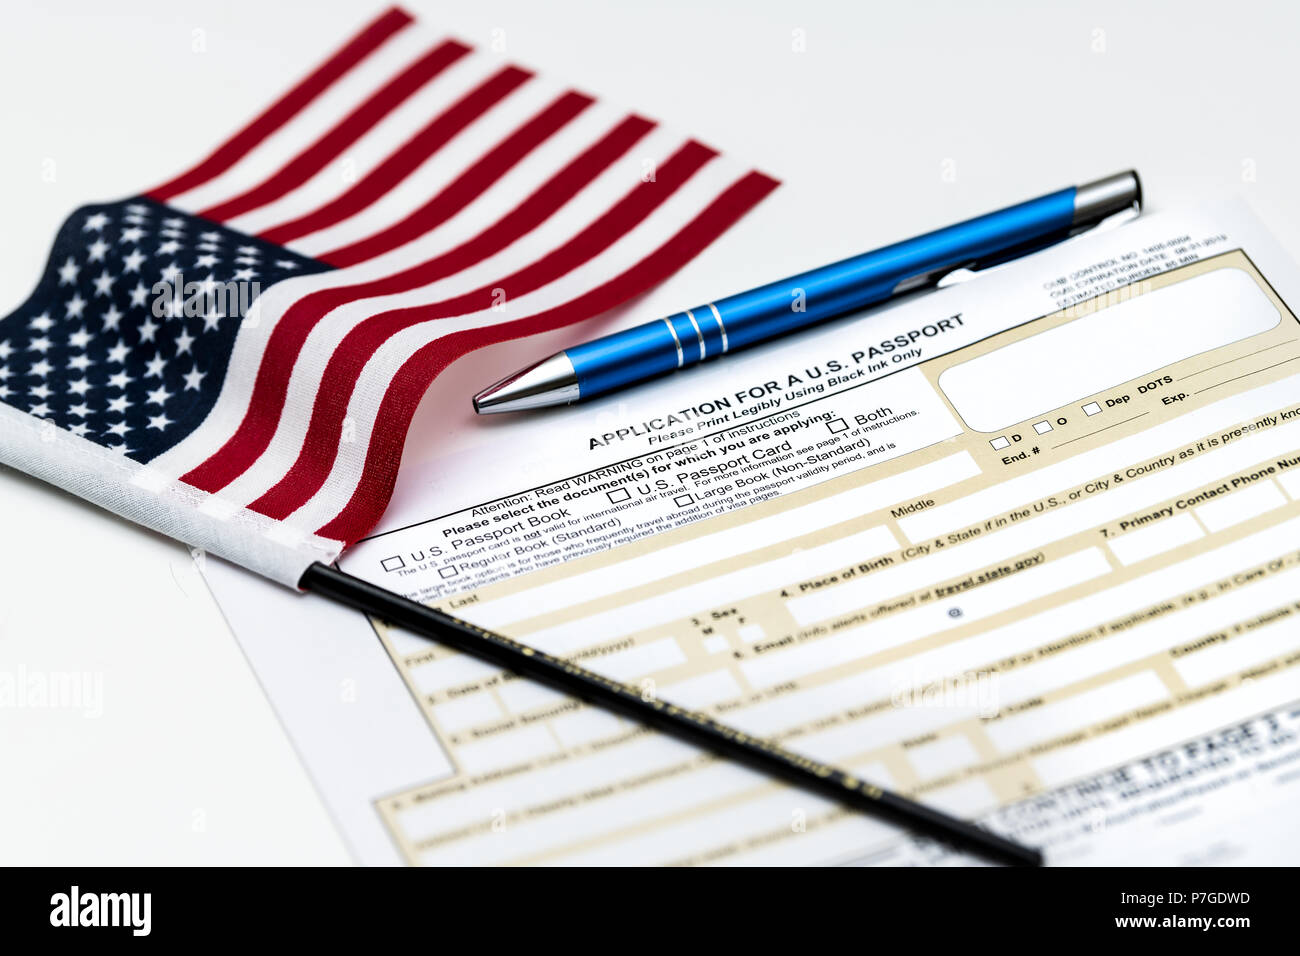 Fairfax, USA - April 11, 2018: U.S. Department of State application for US, American passport on table with pen, flag - Stock Image